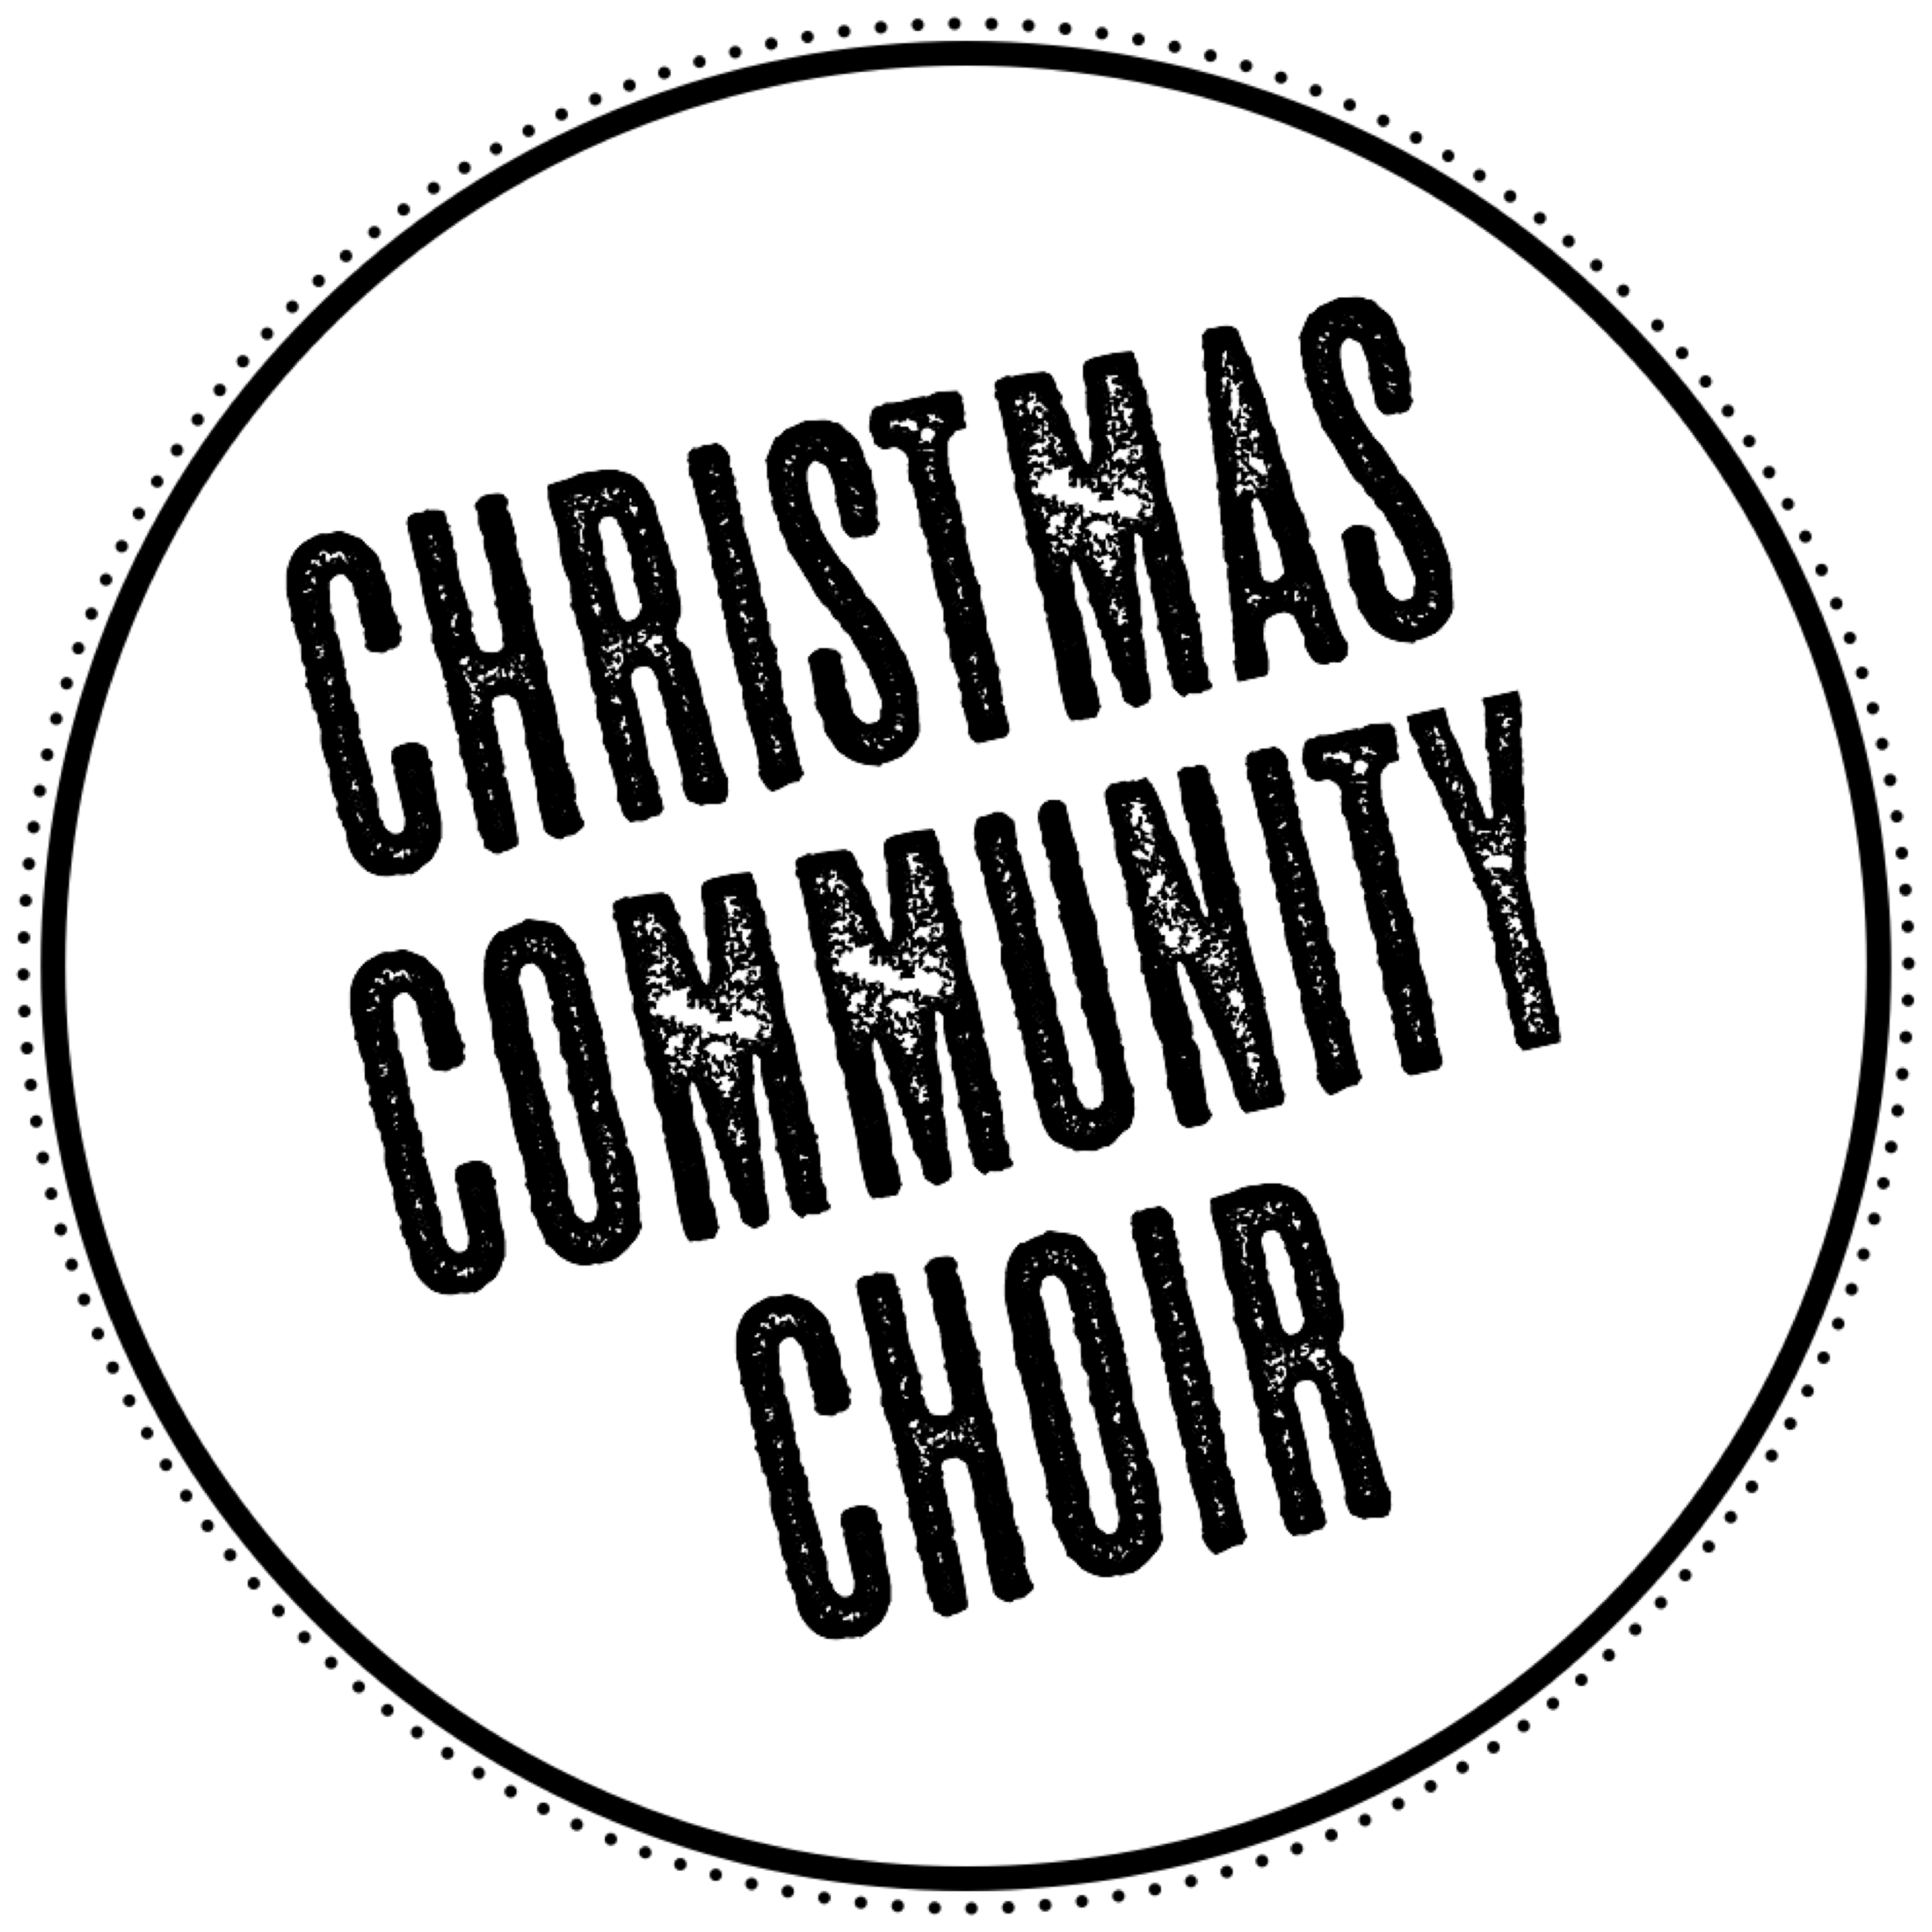 CHRISTMAS COMMUNITY CHOIR